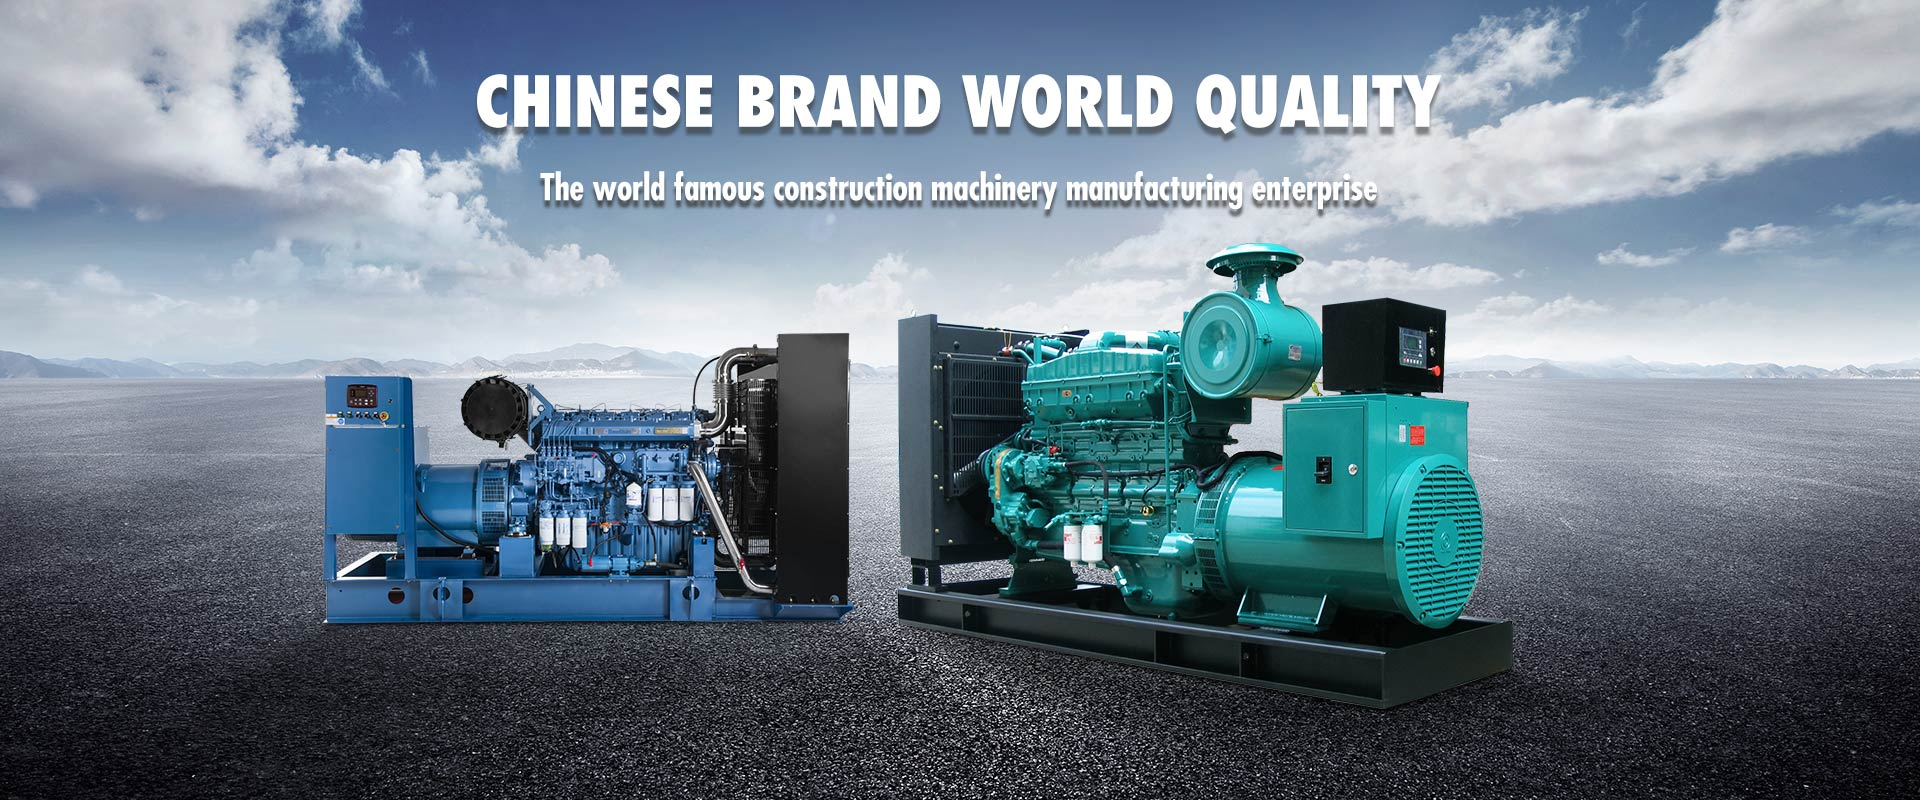 Chinese brand world quality